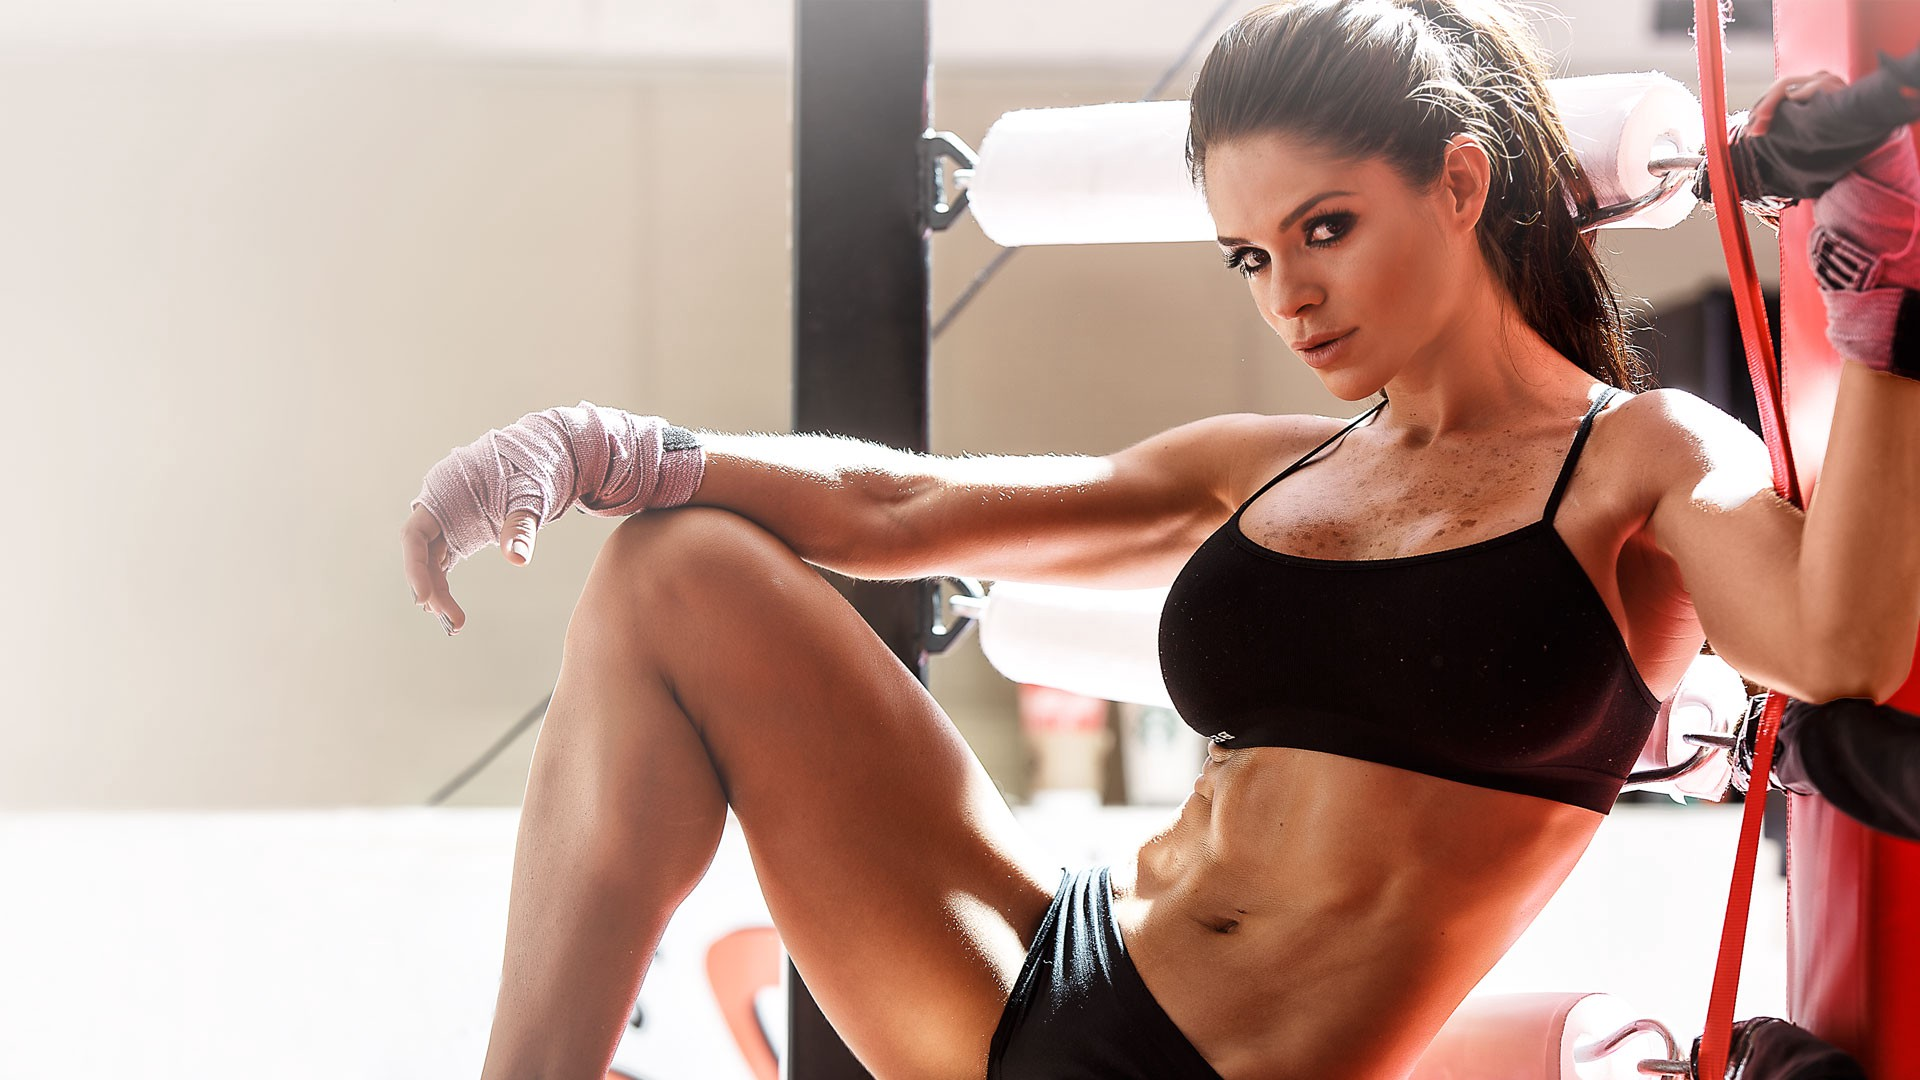 Michelle Lewin Joins The⚡heroes Family Emanuele